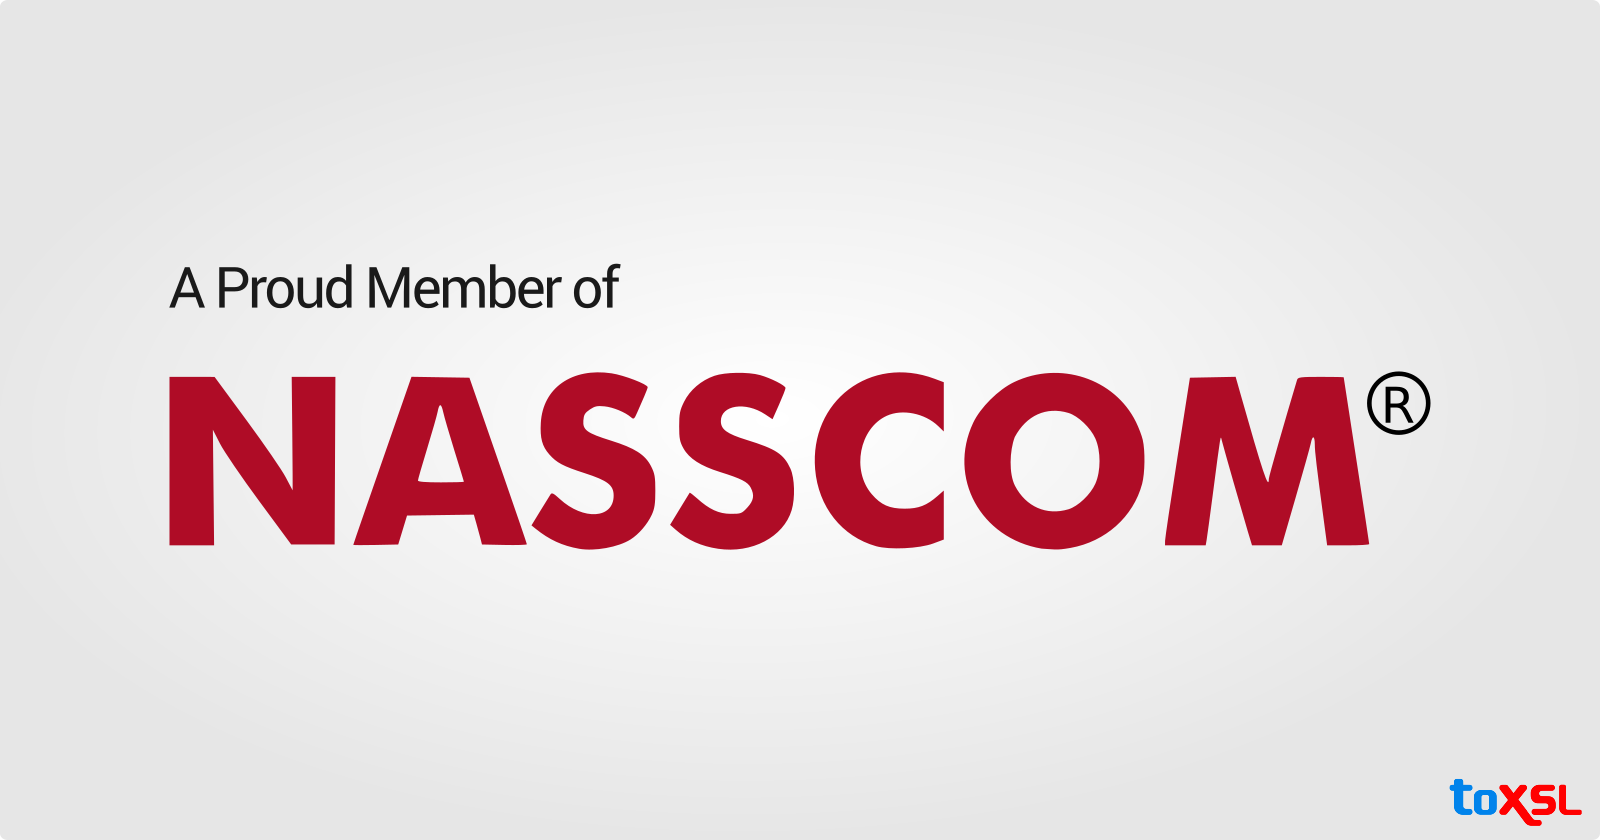 Delighted To Be An Illustrious Member of NASSCOM!!